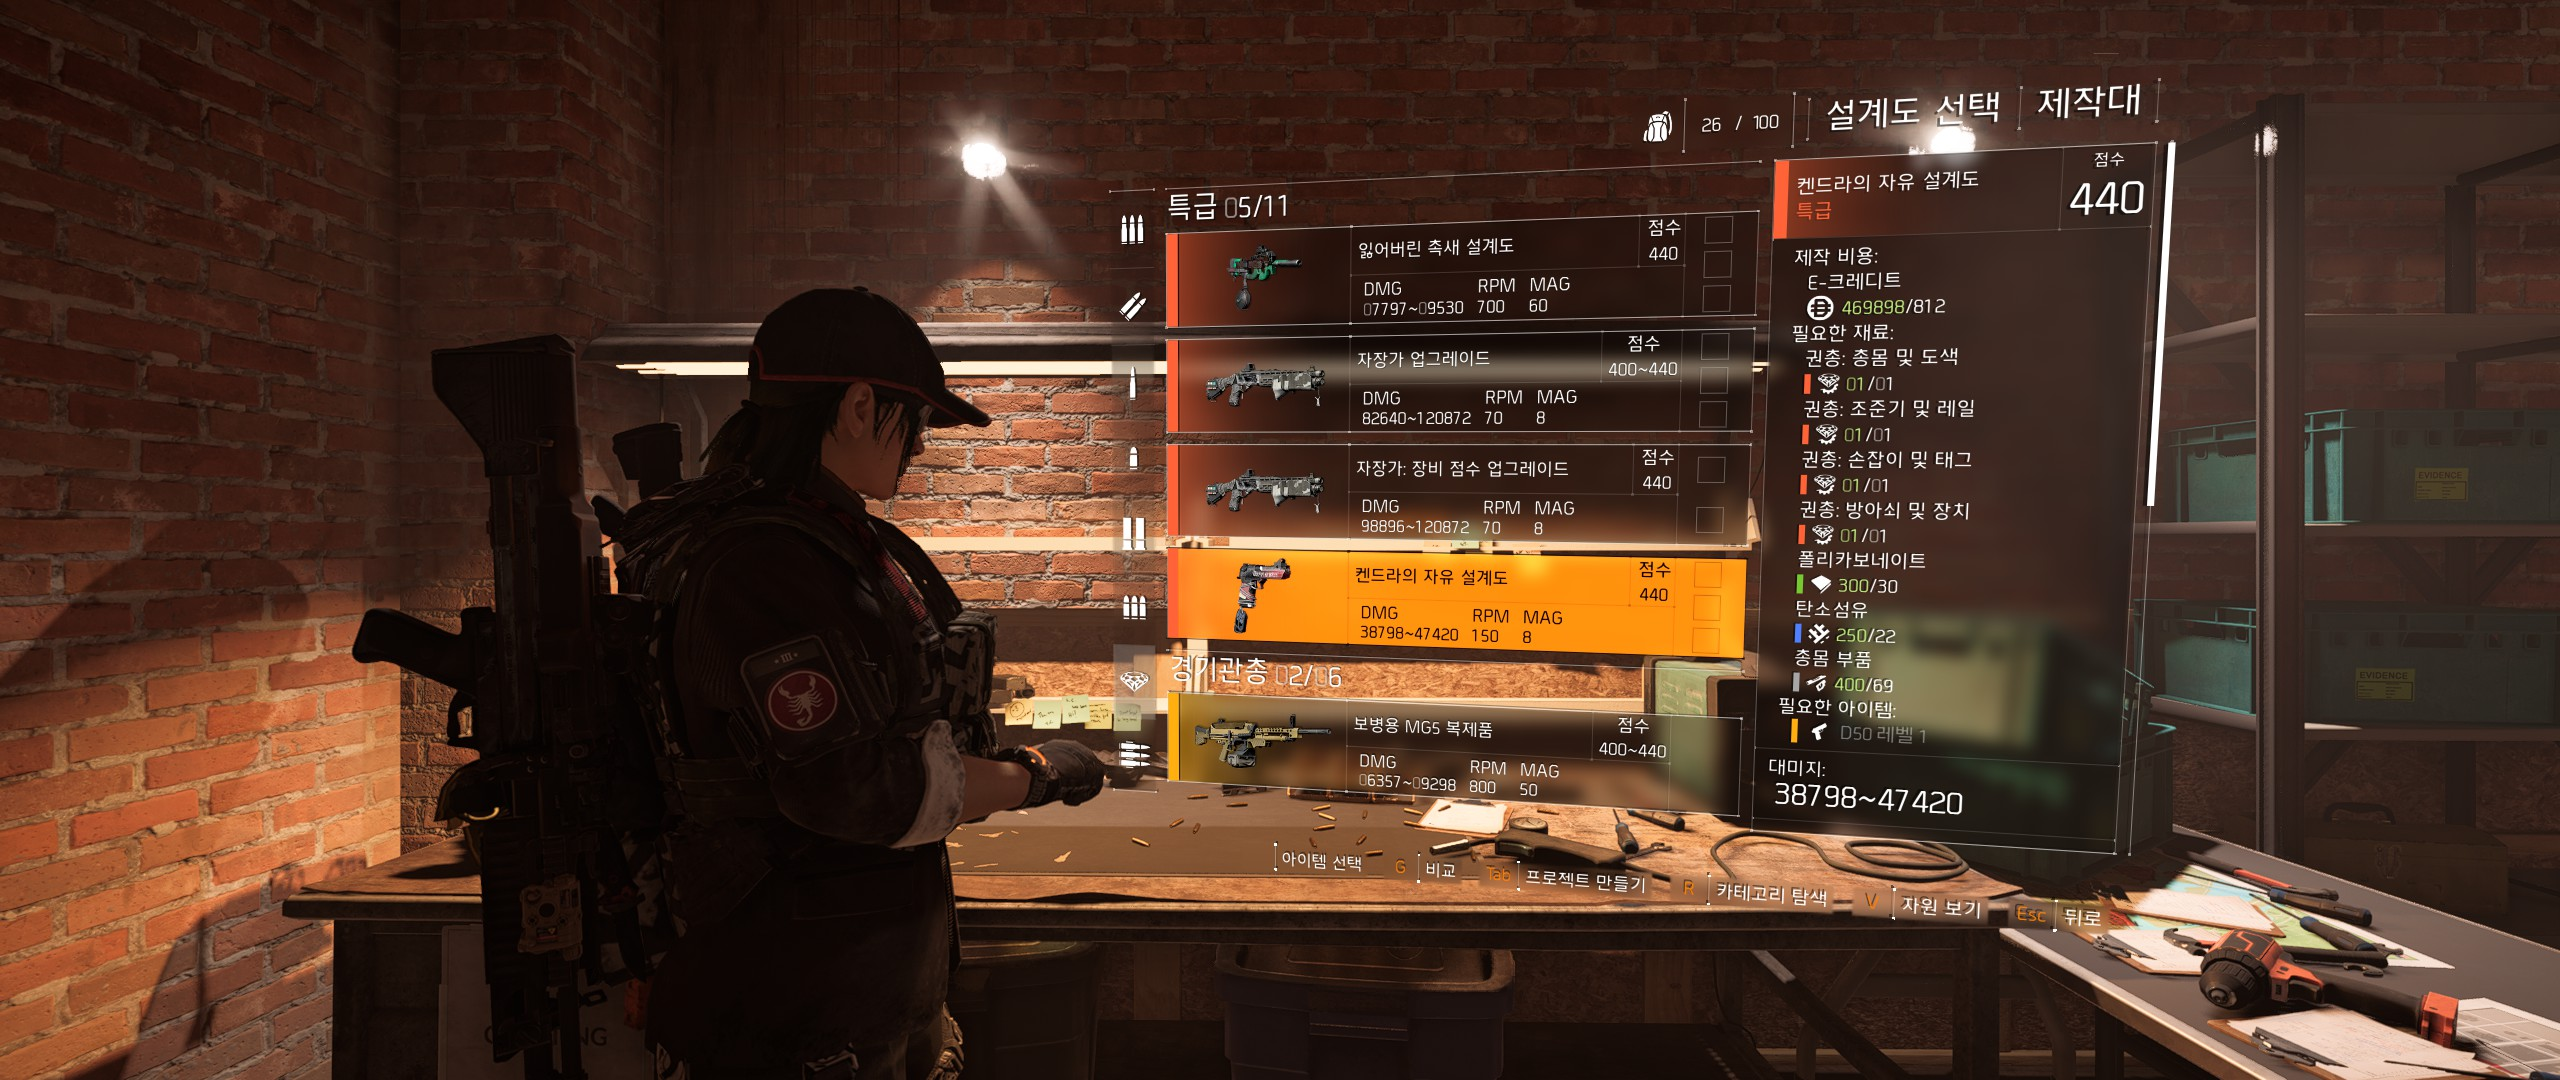 Tom Clancy's The Division® 22019-4-1-18-47-38.jpg